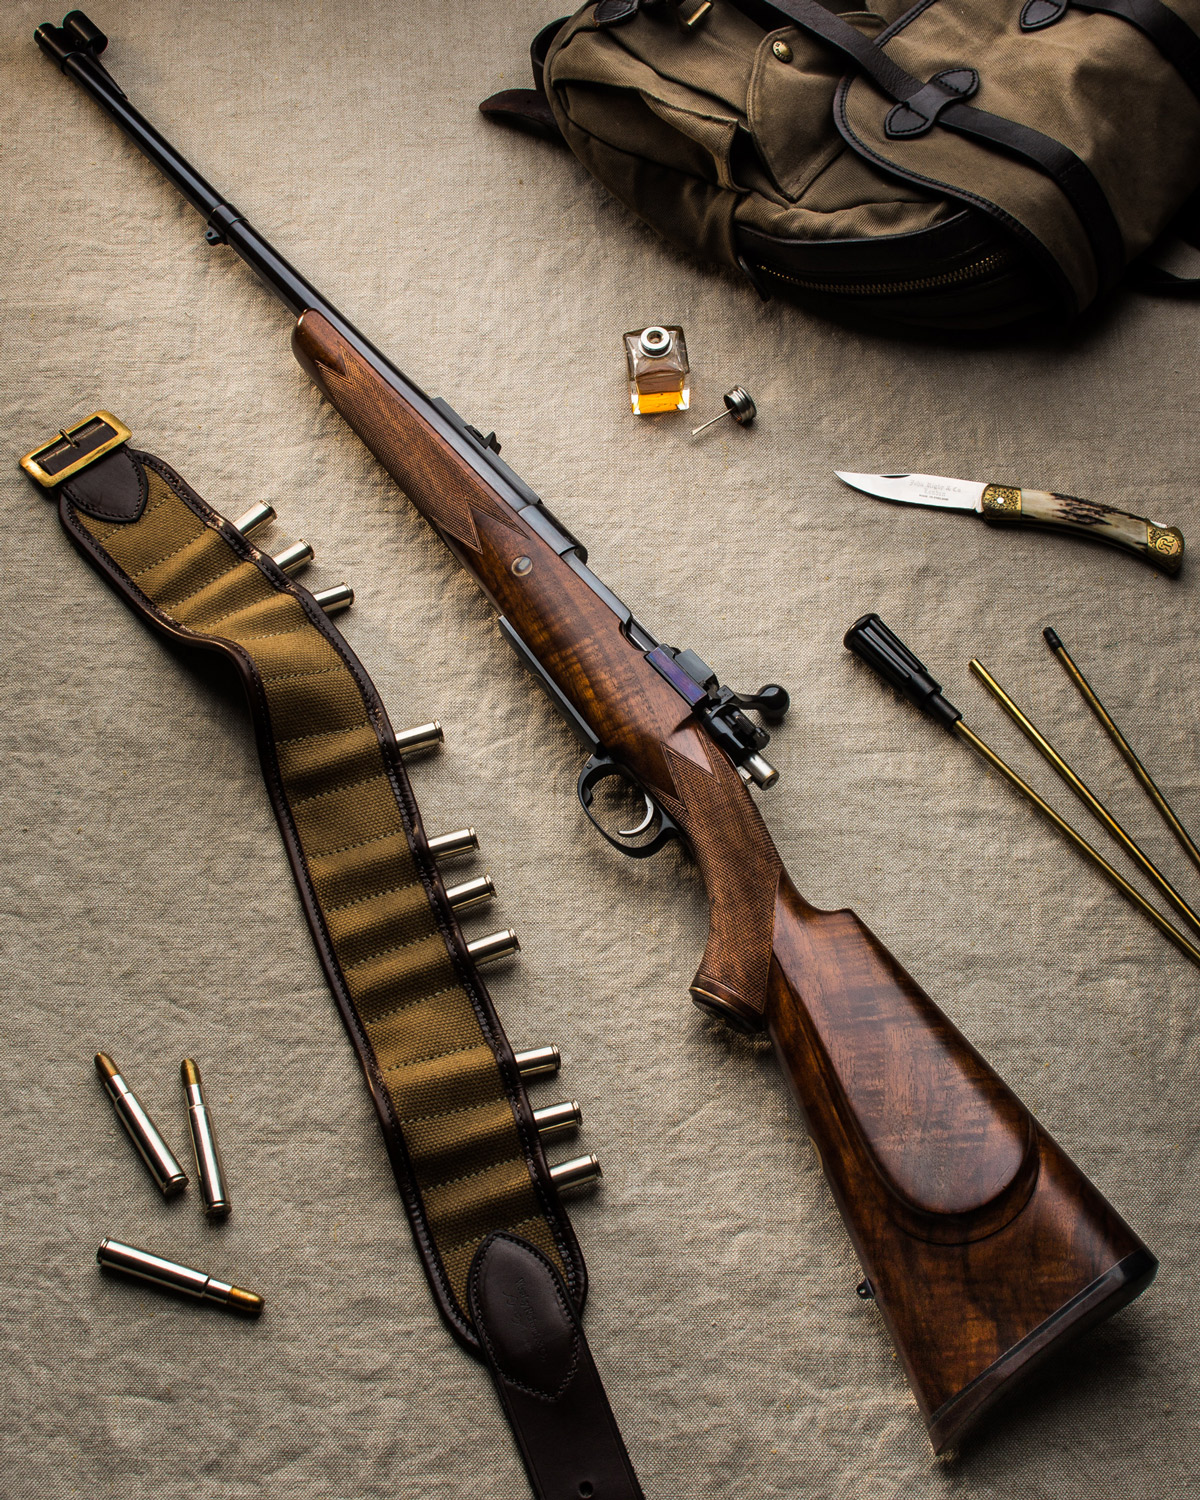 J. Rigby & Co. - Bolt Action Versus Double Rifle?